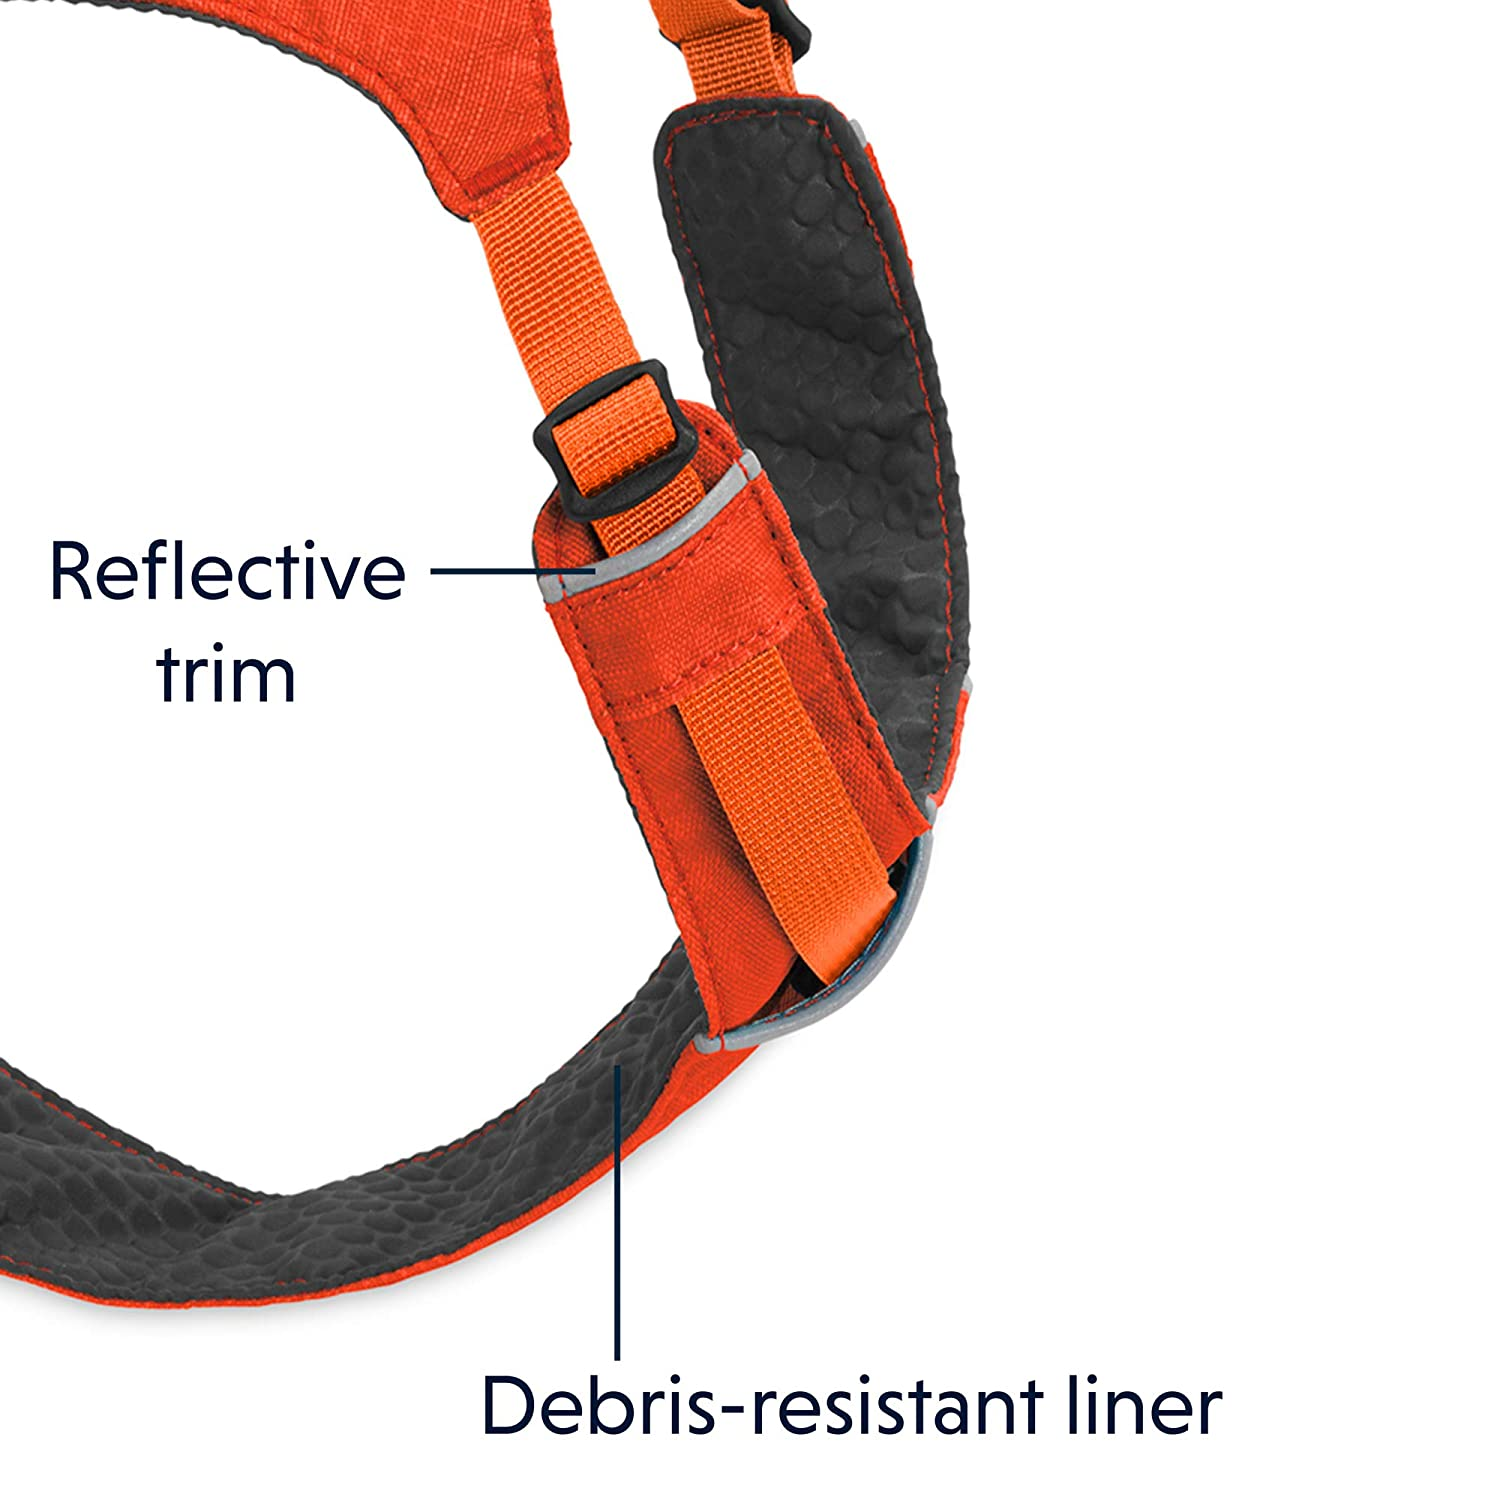 3082-601LL1 Large to Very Large Breeds Sockeye Red Hi /& Light Harness Ruffwear Lightweight Dog Harness Size: Large//X-Large Adjustable Fit